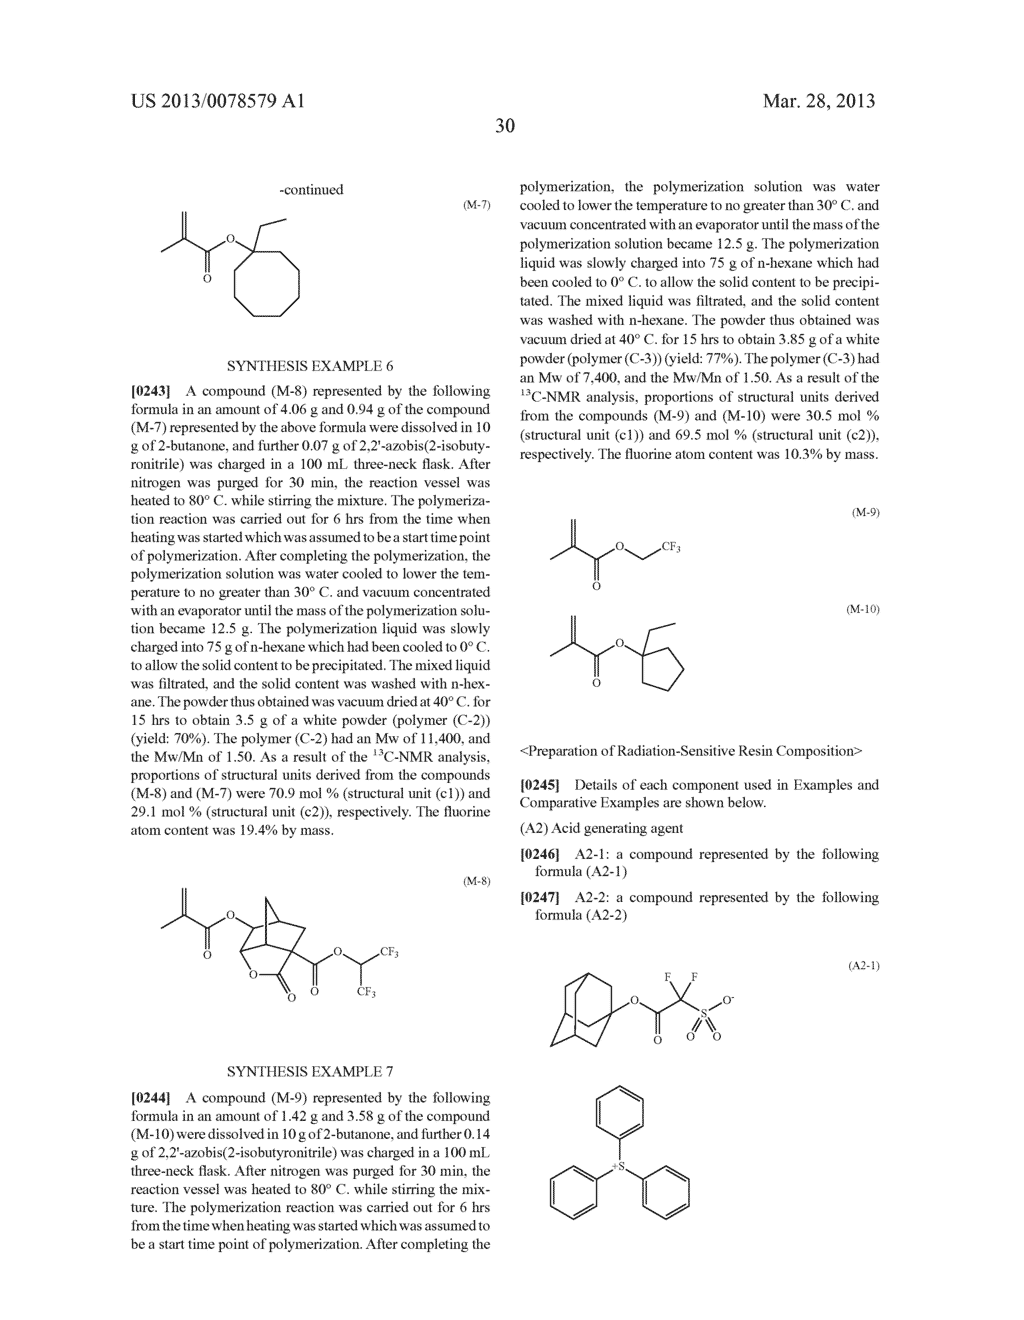 RADIATION-SENSITIVE RESIN COMPOSITION, METHOD FOR FORMING RESIST PATTERN,     ACID GENERATING AGENT AND COMPOUND - diagram, schematic, and image 31